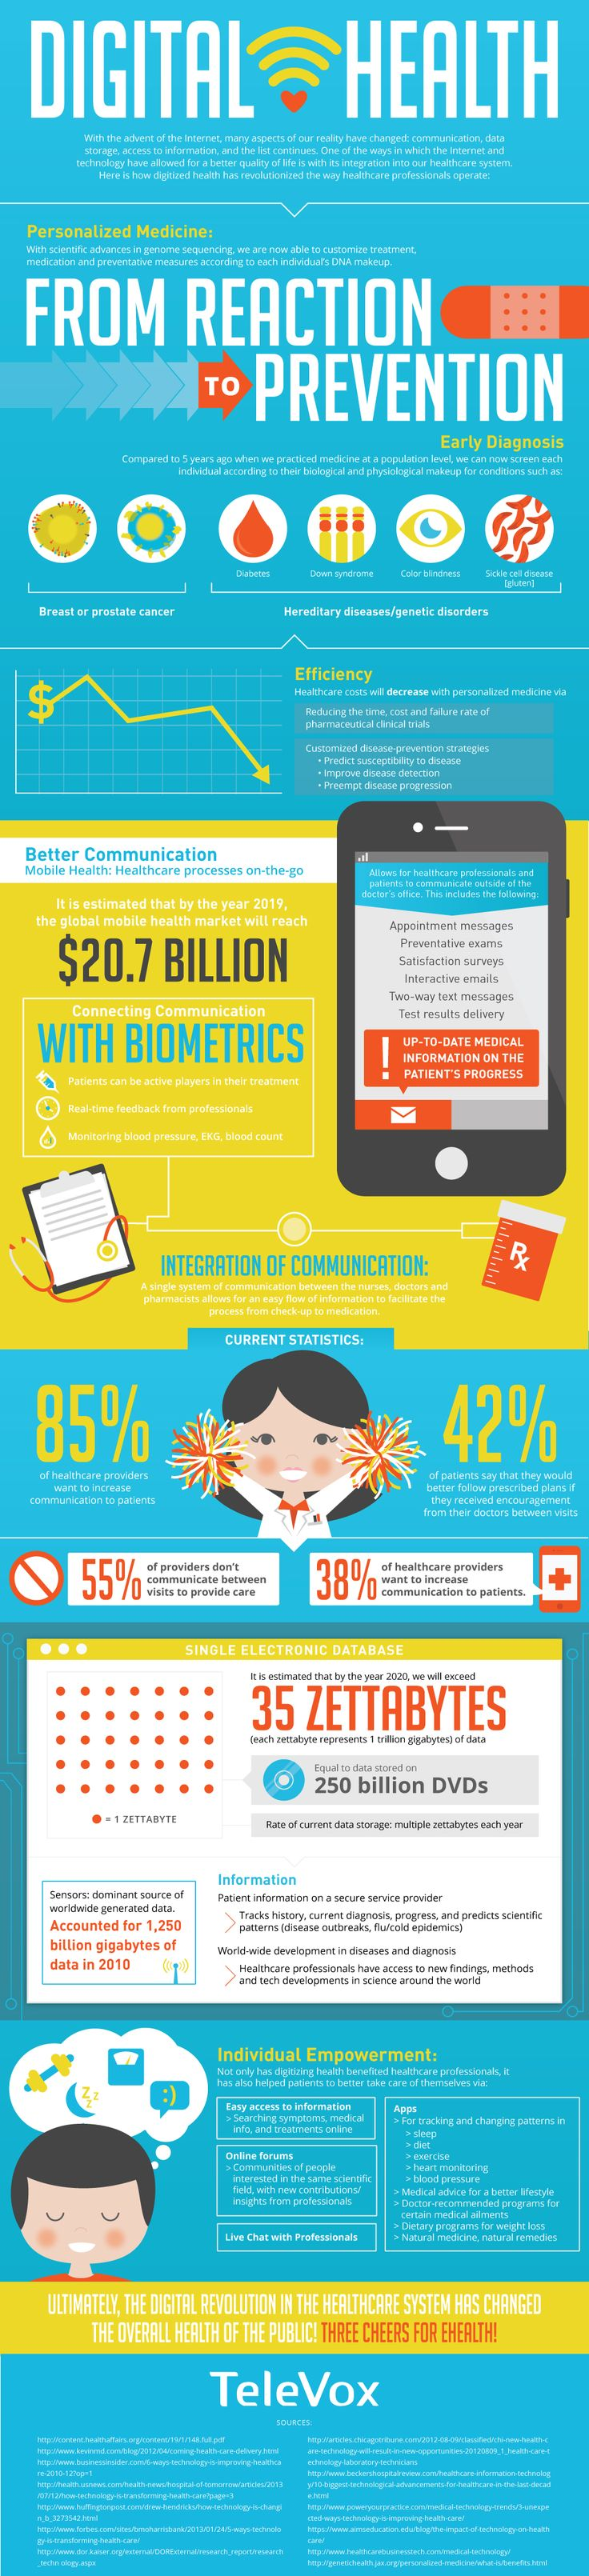 The digitalization of healthcare [INFOGRAPHIC] #digitalization #healthcare #Infographic